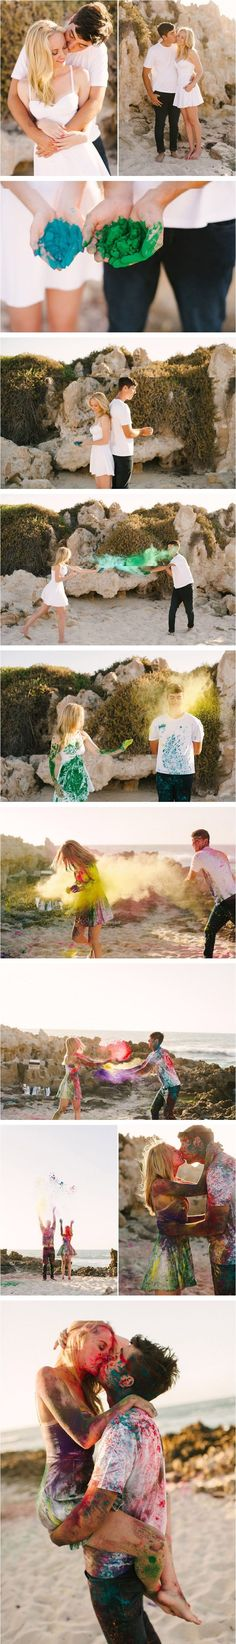 Paint Fight Engagement Photos is part of Engagement photos - Do we need to say anything Engagement Pictures, Engagement Shoots, Wedding Engagement, Proposal Pictures, Proposal Ideas, Couple Photography, Engagement Photography, Wedding Photography, Landscape Photography